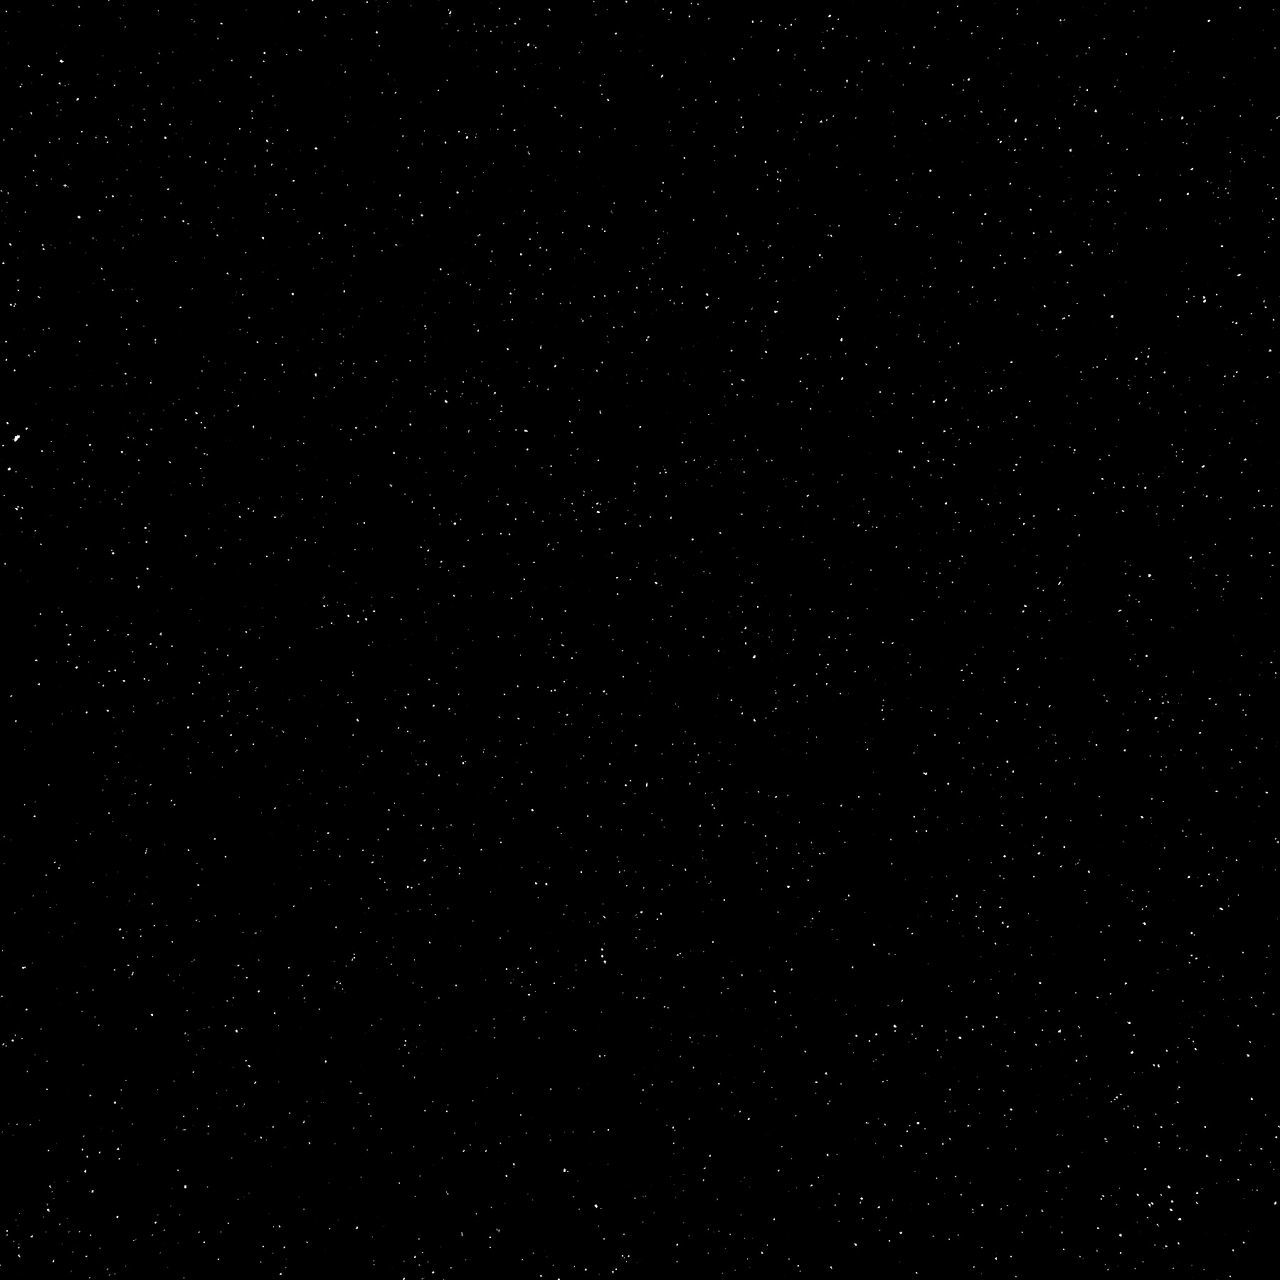 Star - Space Astronomy Star Field Space Galaxy Constellation Backgrounds Night Gas Science Nature No People Sky